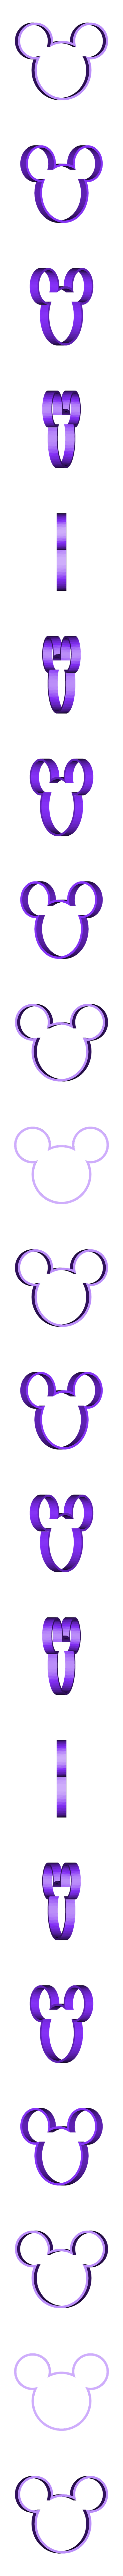 Mickey Gateau.STL Download free STL file Mickey / Cookie cutter • 3D printing design, Spacegoat